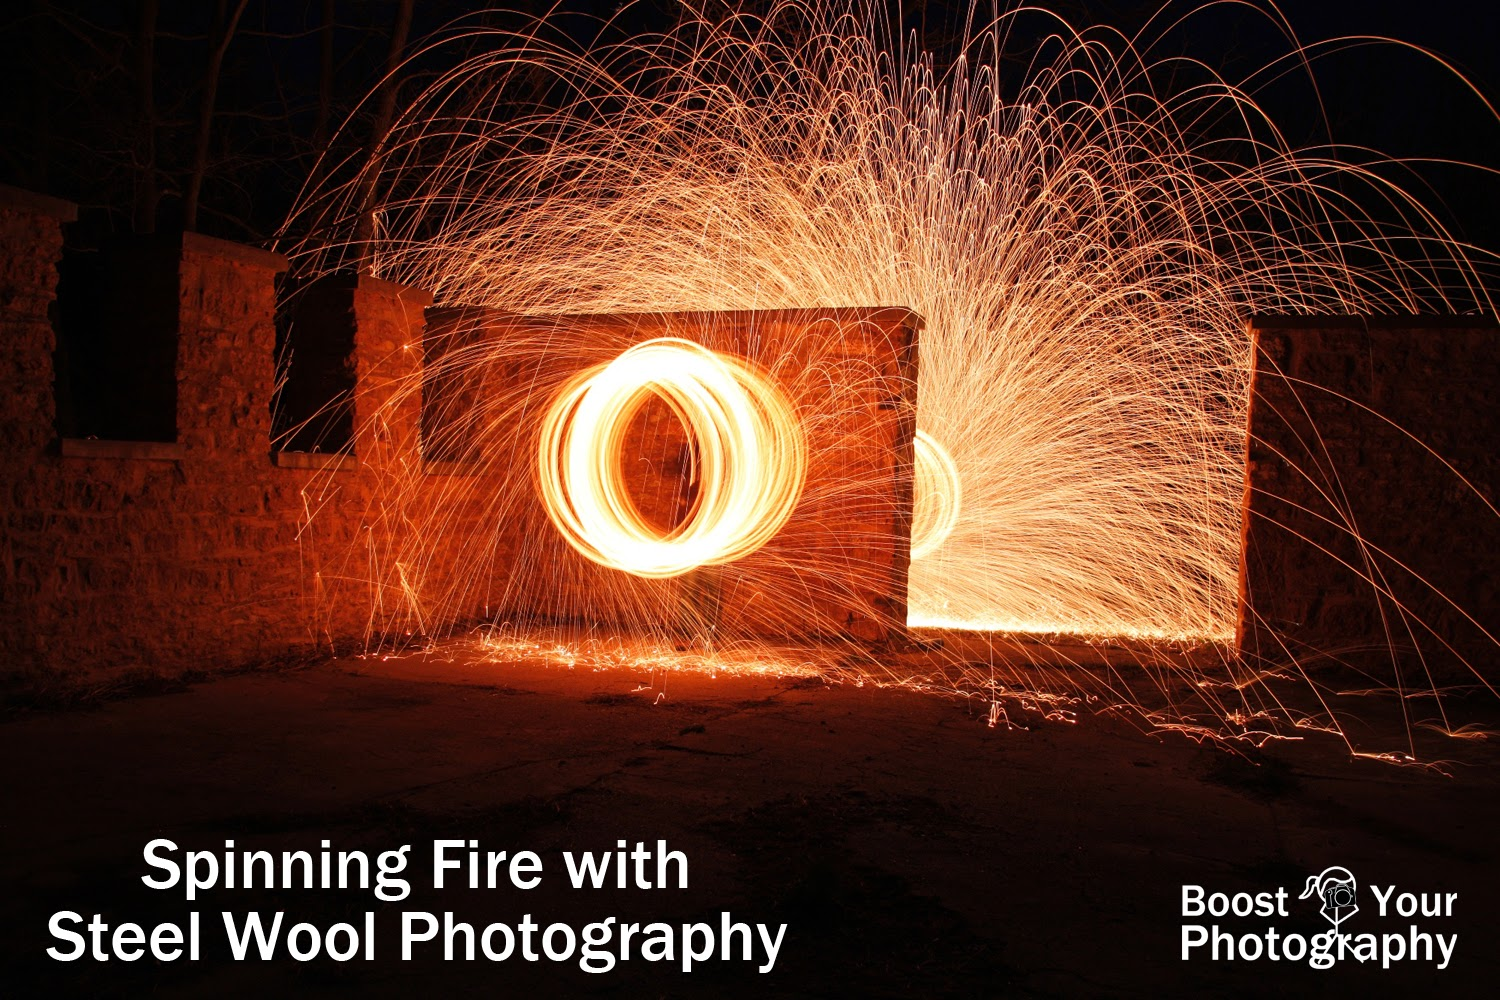 spinning fire with steel wool photography boost your photography. Black Bedroom Furniture Sets. Home Design Ideas